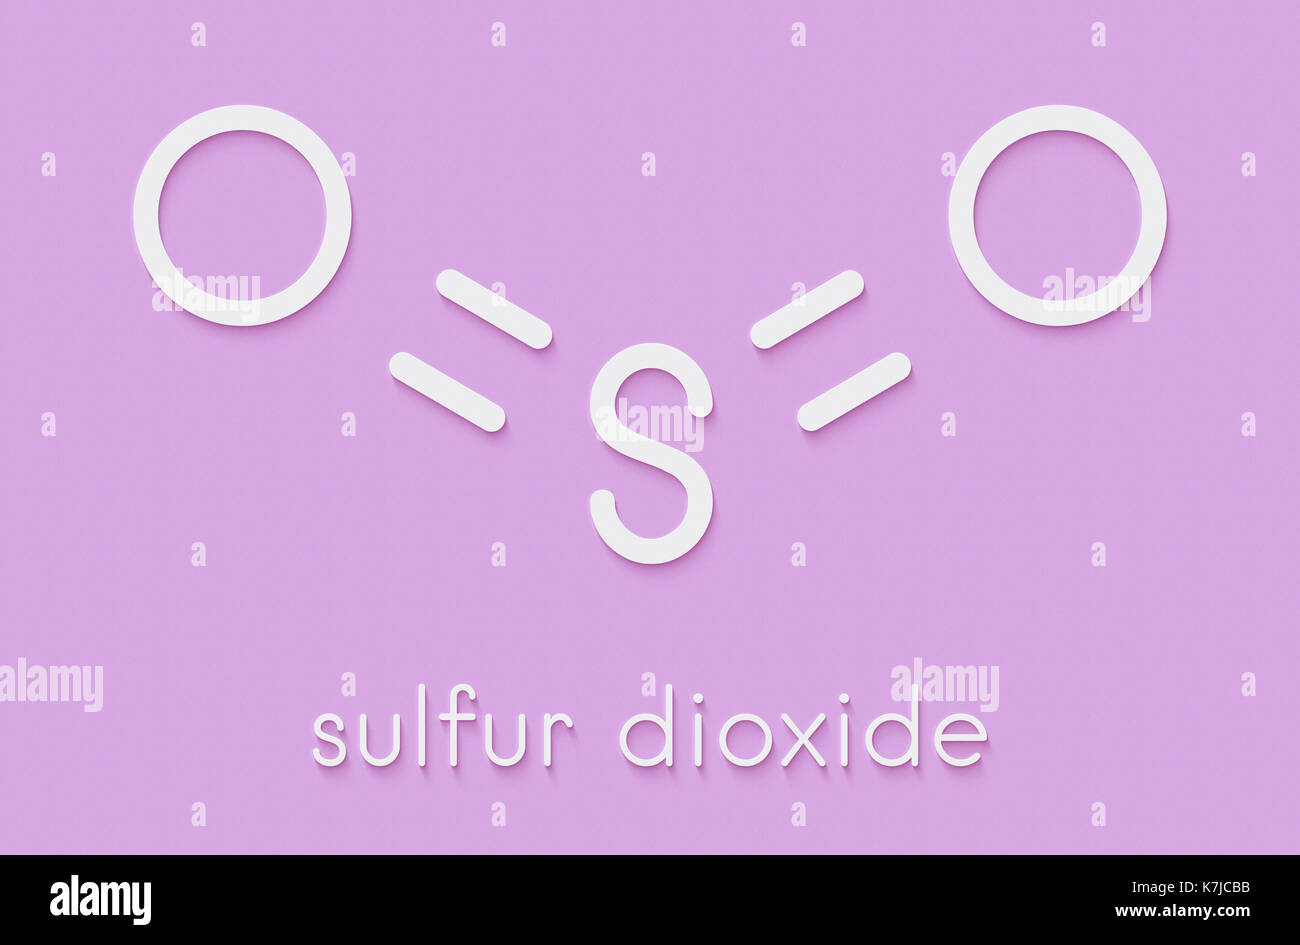 Sulfur dioxide food preservative molecule (E220). Also used in winemaking and responsible for sulfites in wine. Skeletal formula. - Stock Image